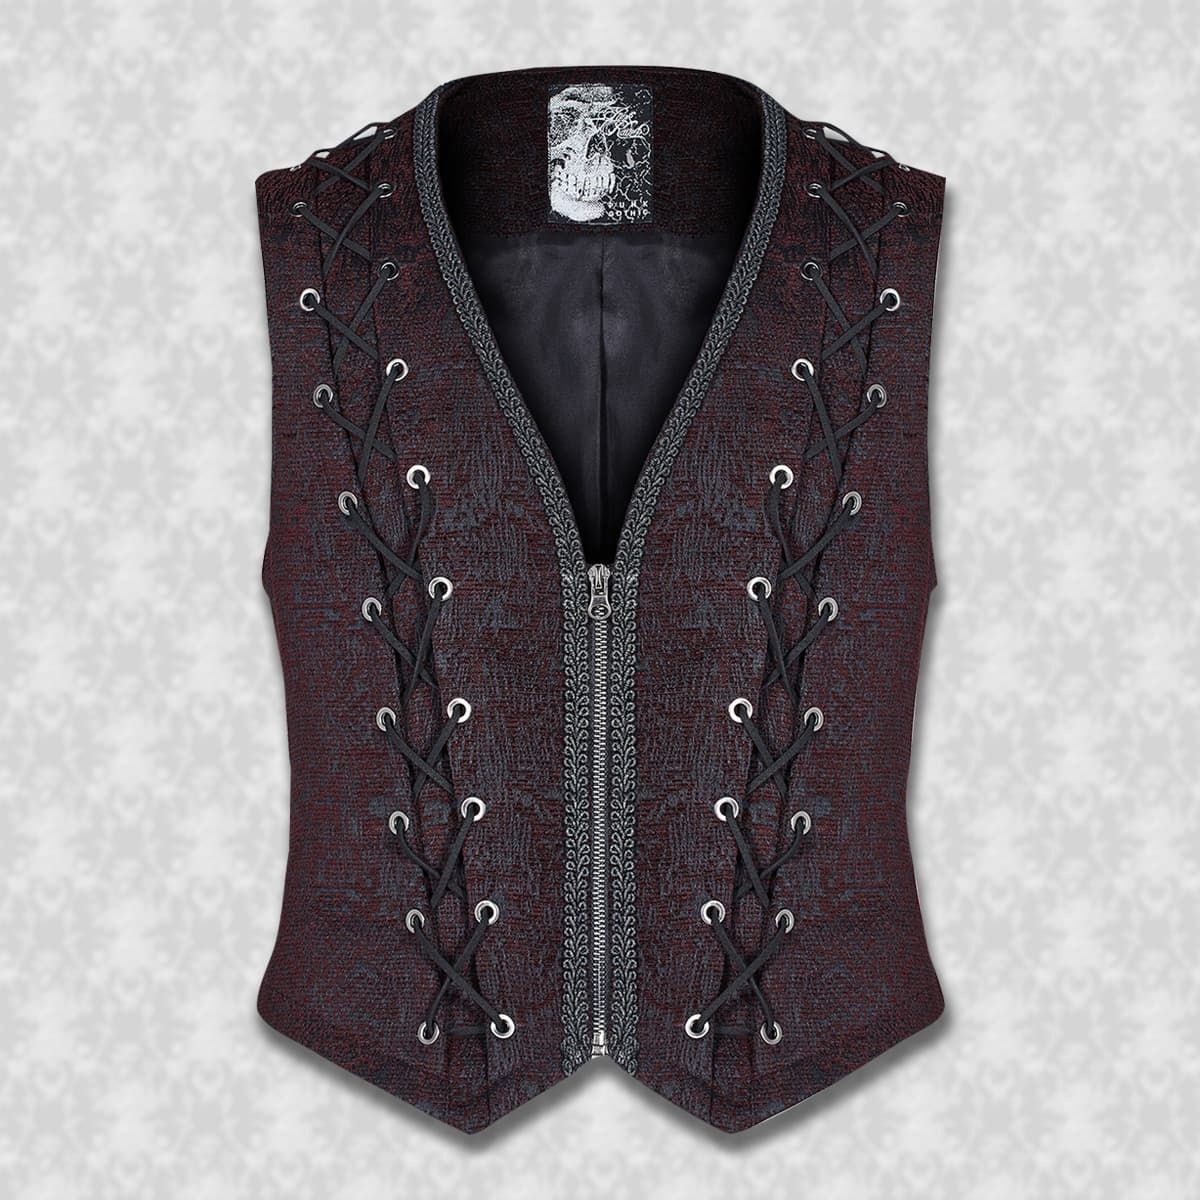 Blackheart Black and Wine Brocade Vest with Front Zipper and Faux Lace